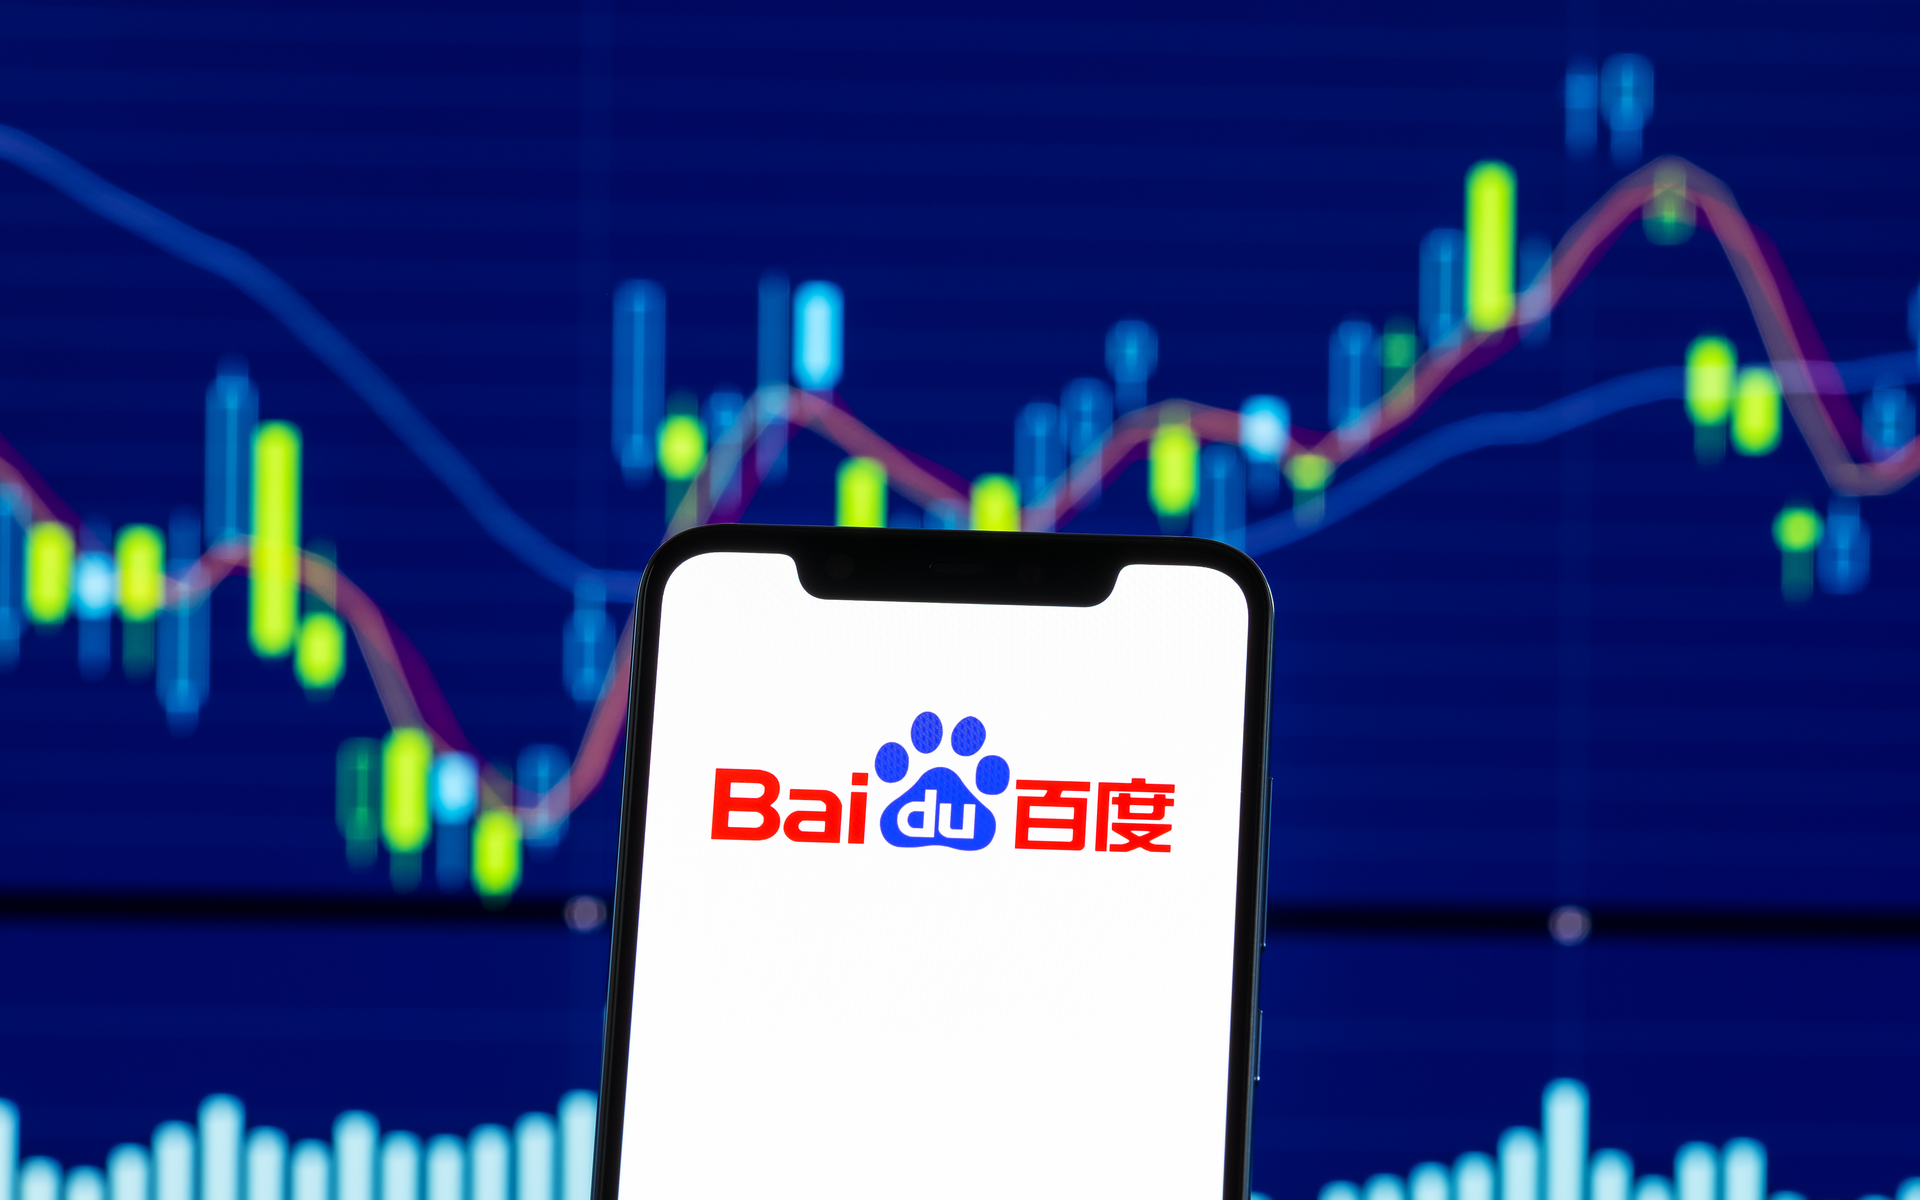 baidu china google trends bitcoin btc